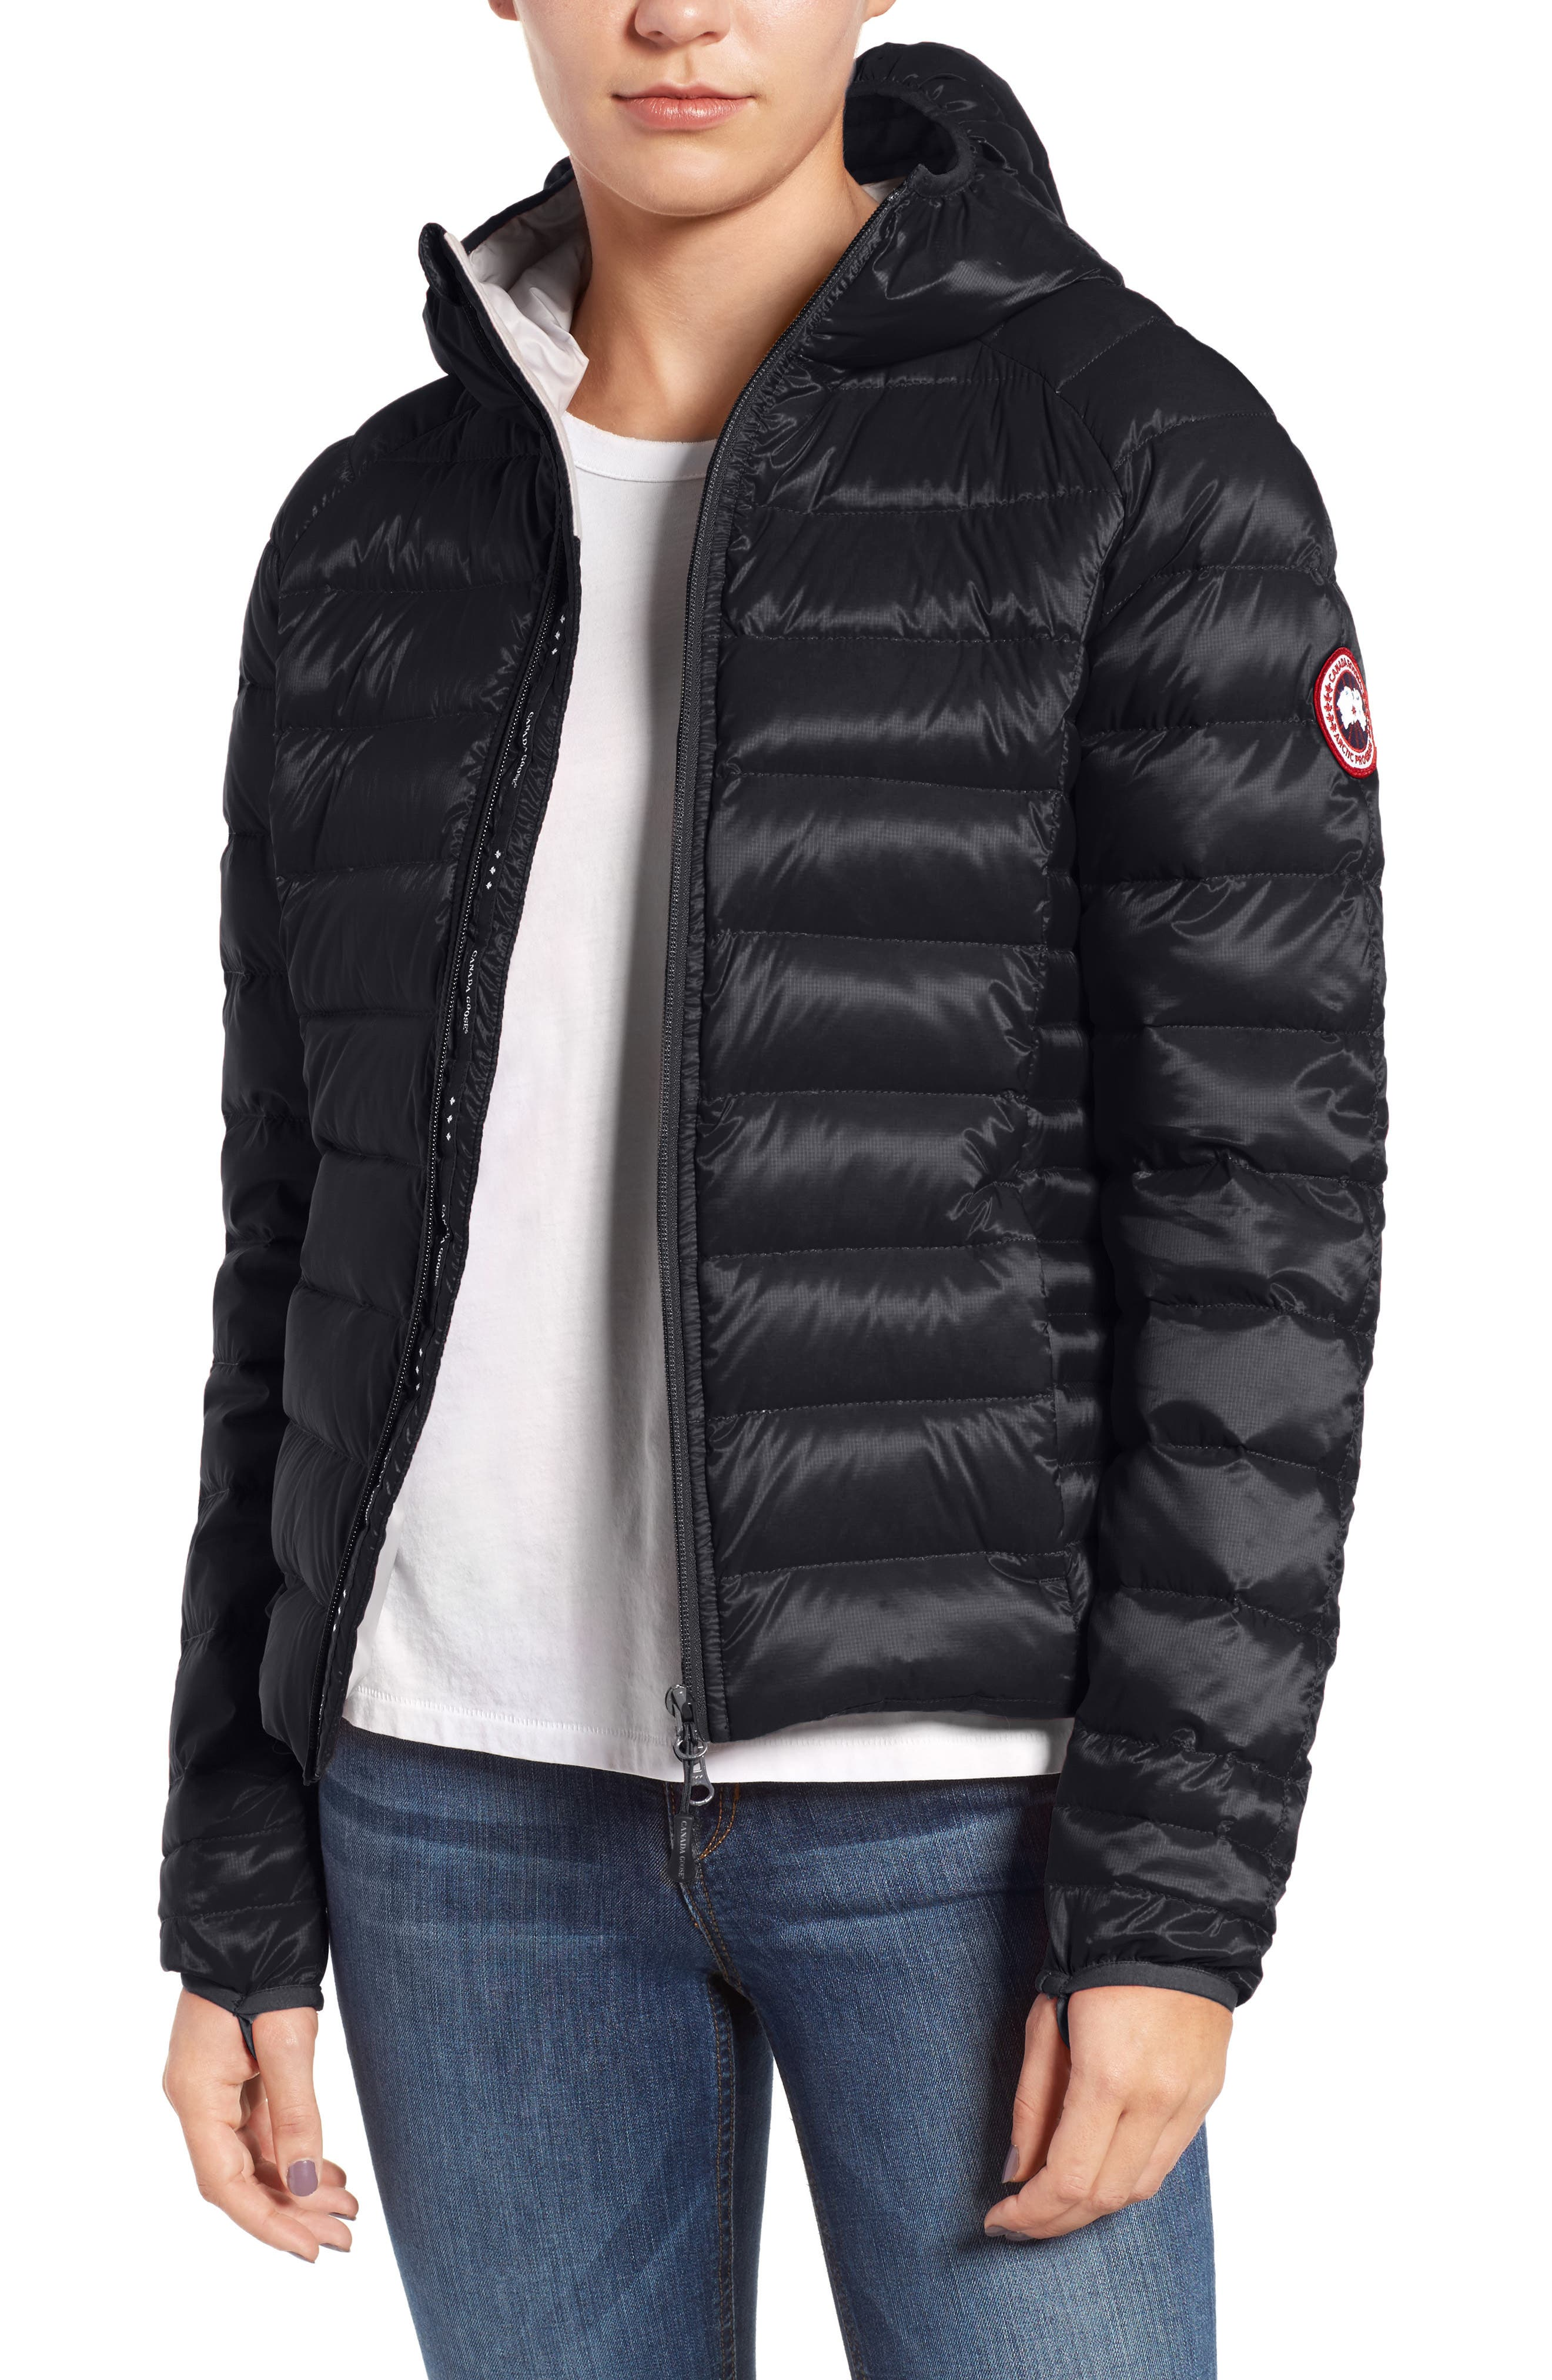 'Brookvale' Packable Hooded Quilted Down Jacket,                         Main,                         color, Black/ Graphite